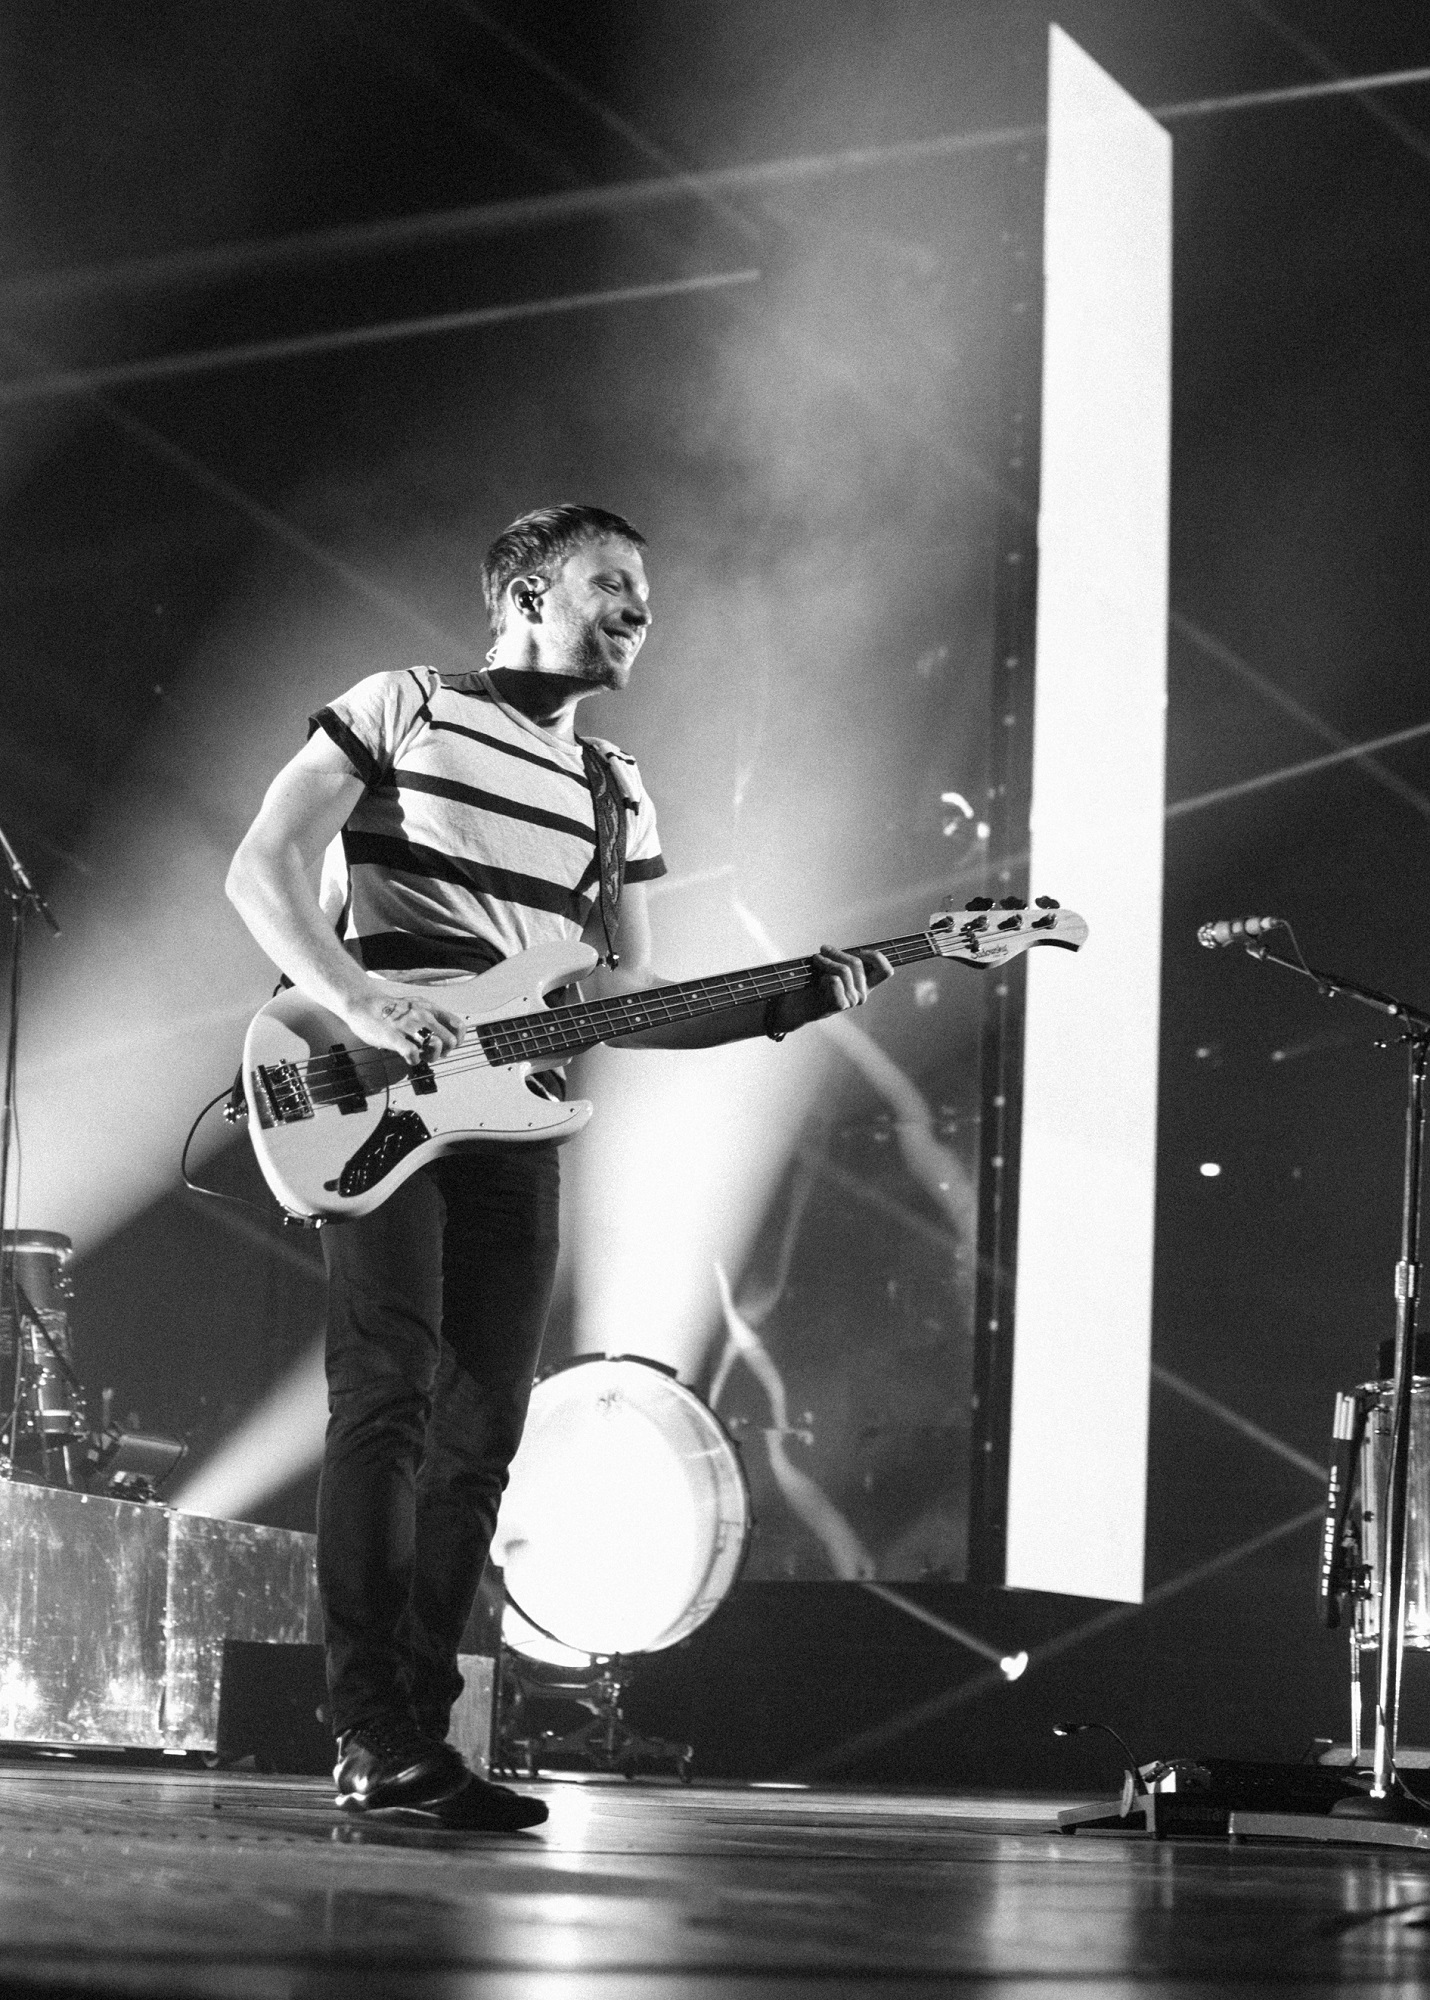 """Ben McKee of Imagine Dragons performs at Bridgestone Arena in Nashville, Tenn. on Wednesday, June 8, 2015, The performance was part of the band's """"Smoke + Mirrors"""" tour. (MTSU Sidelines / Andre Rowlett)"""